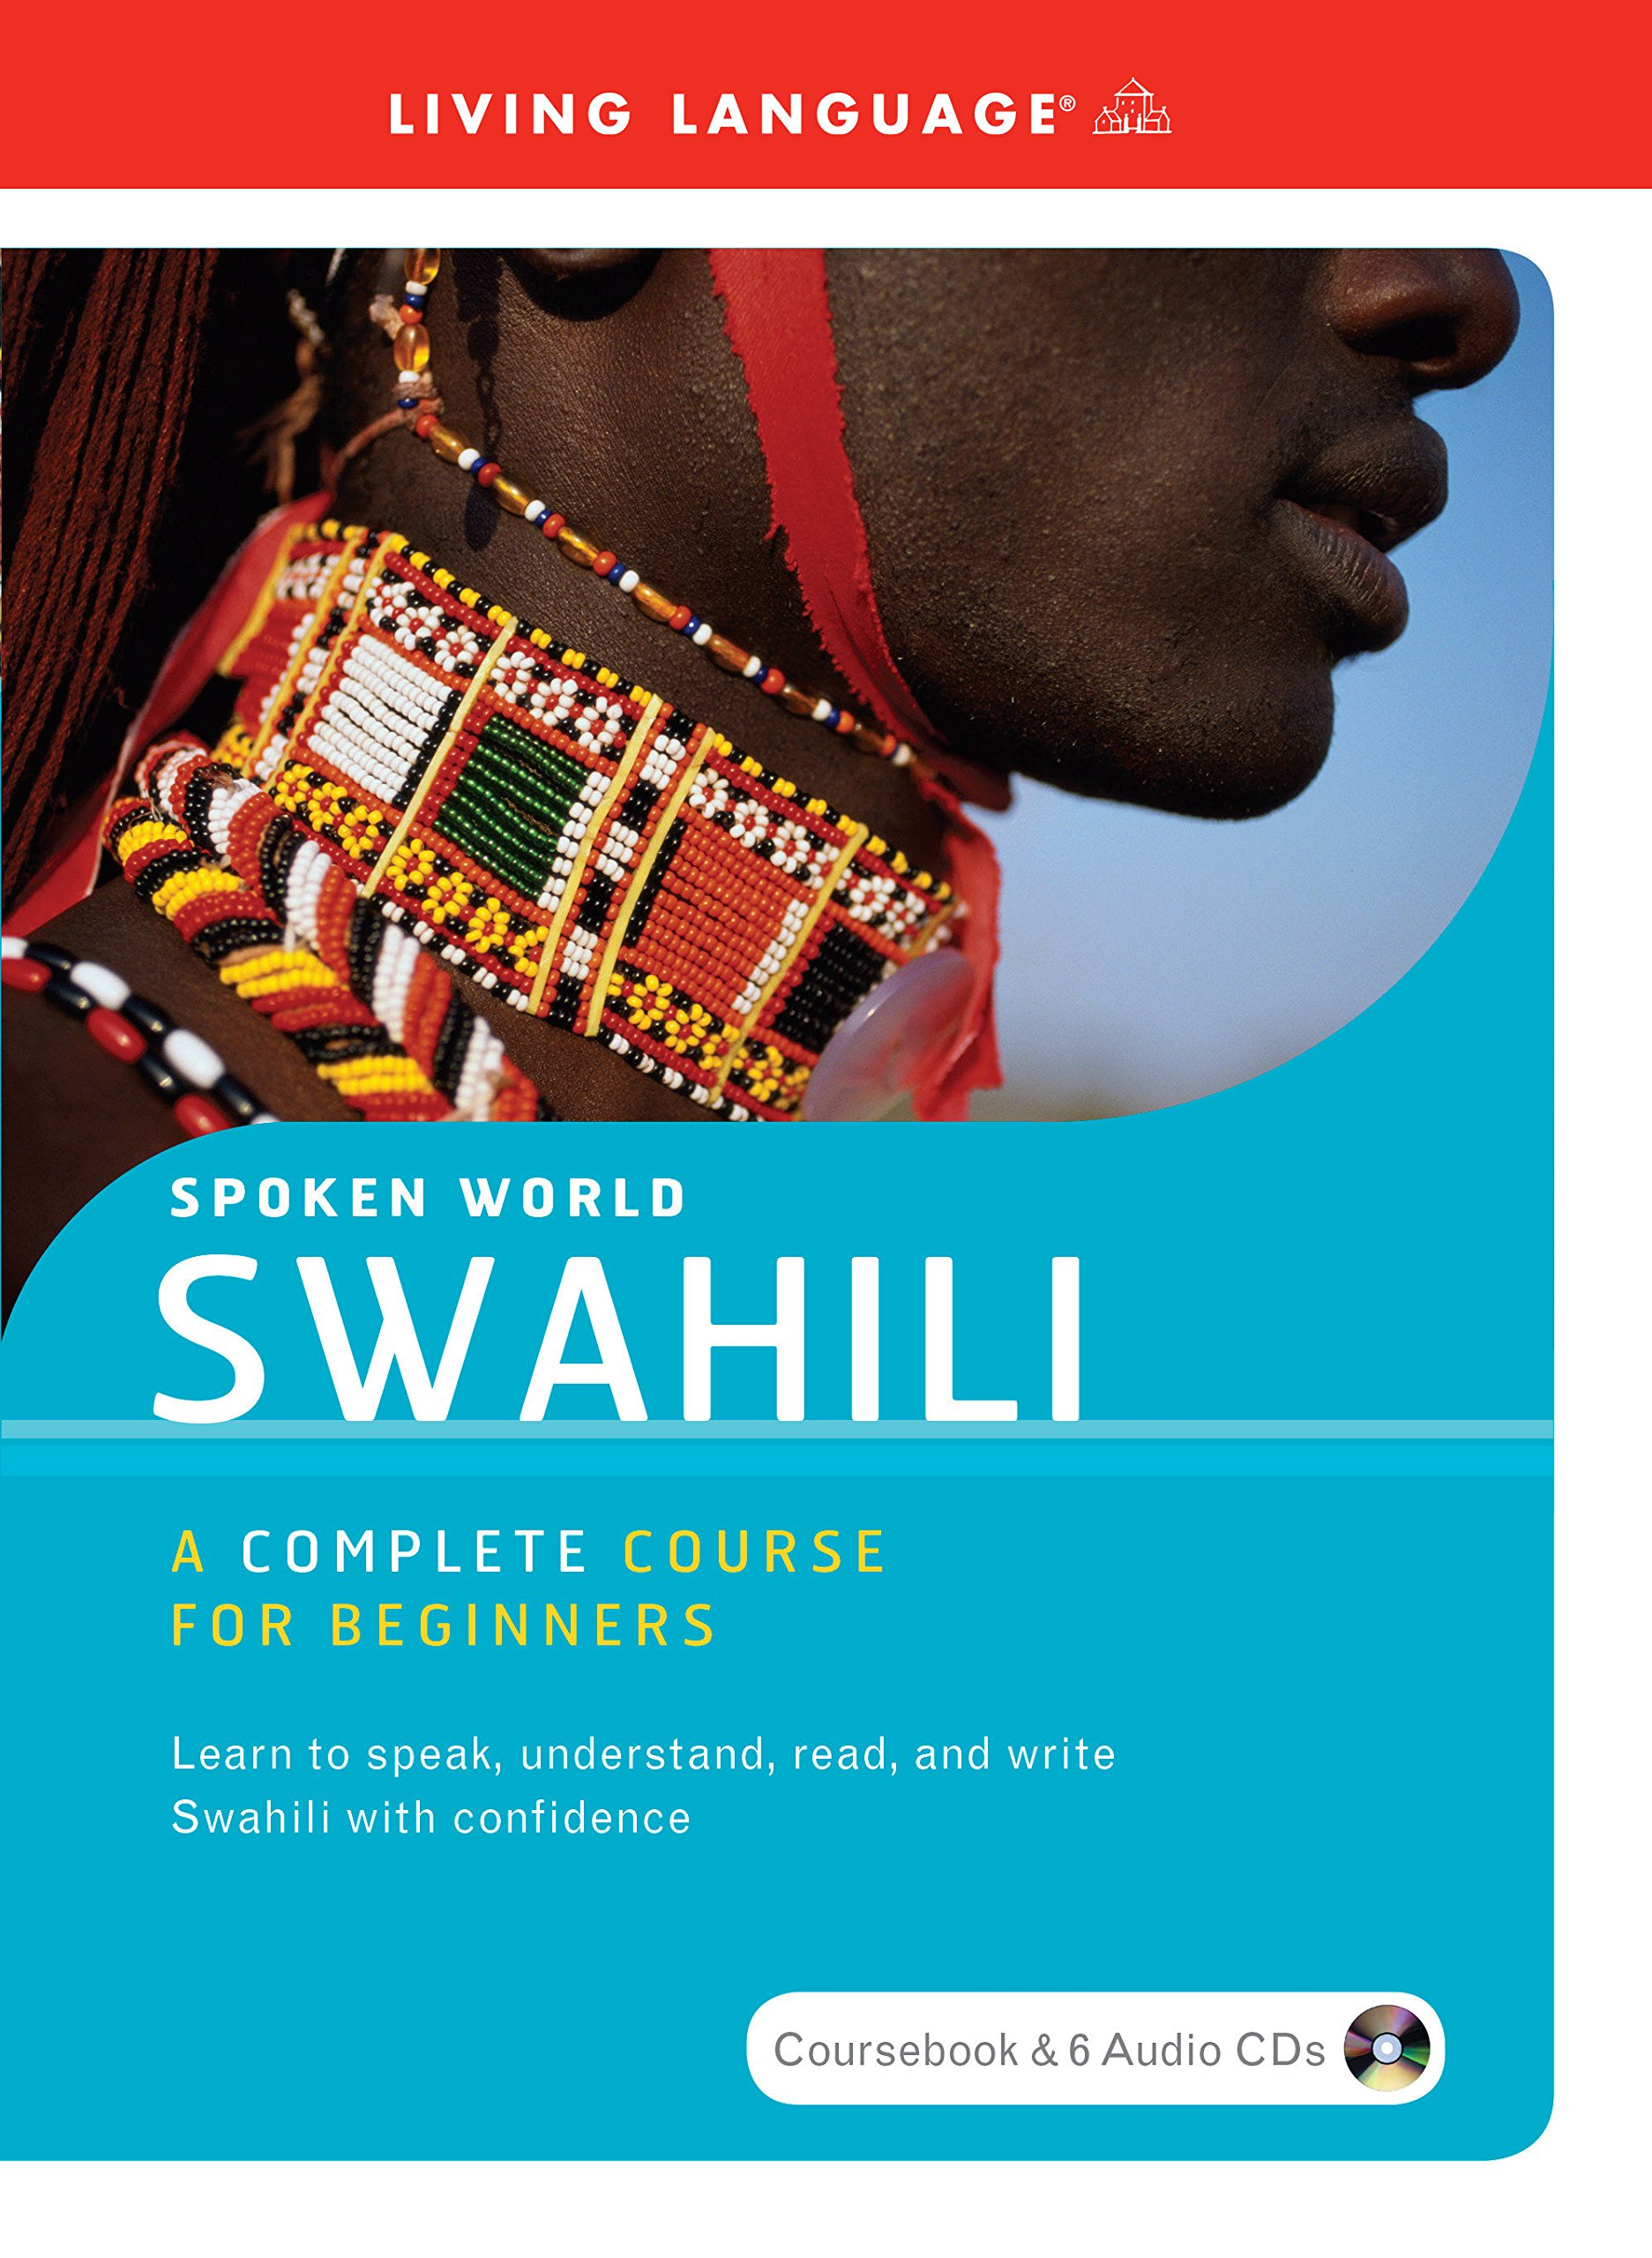 Swahili: A Complete Course for Beginners (Spoken World) (Book & CD) by Living Language